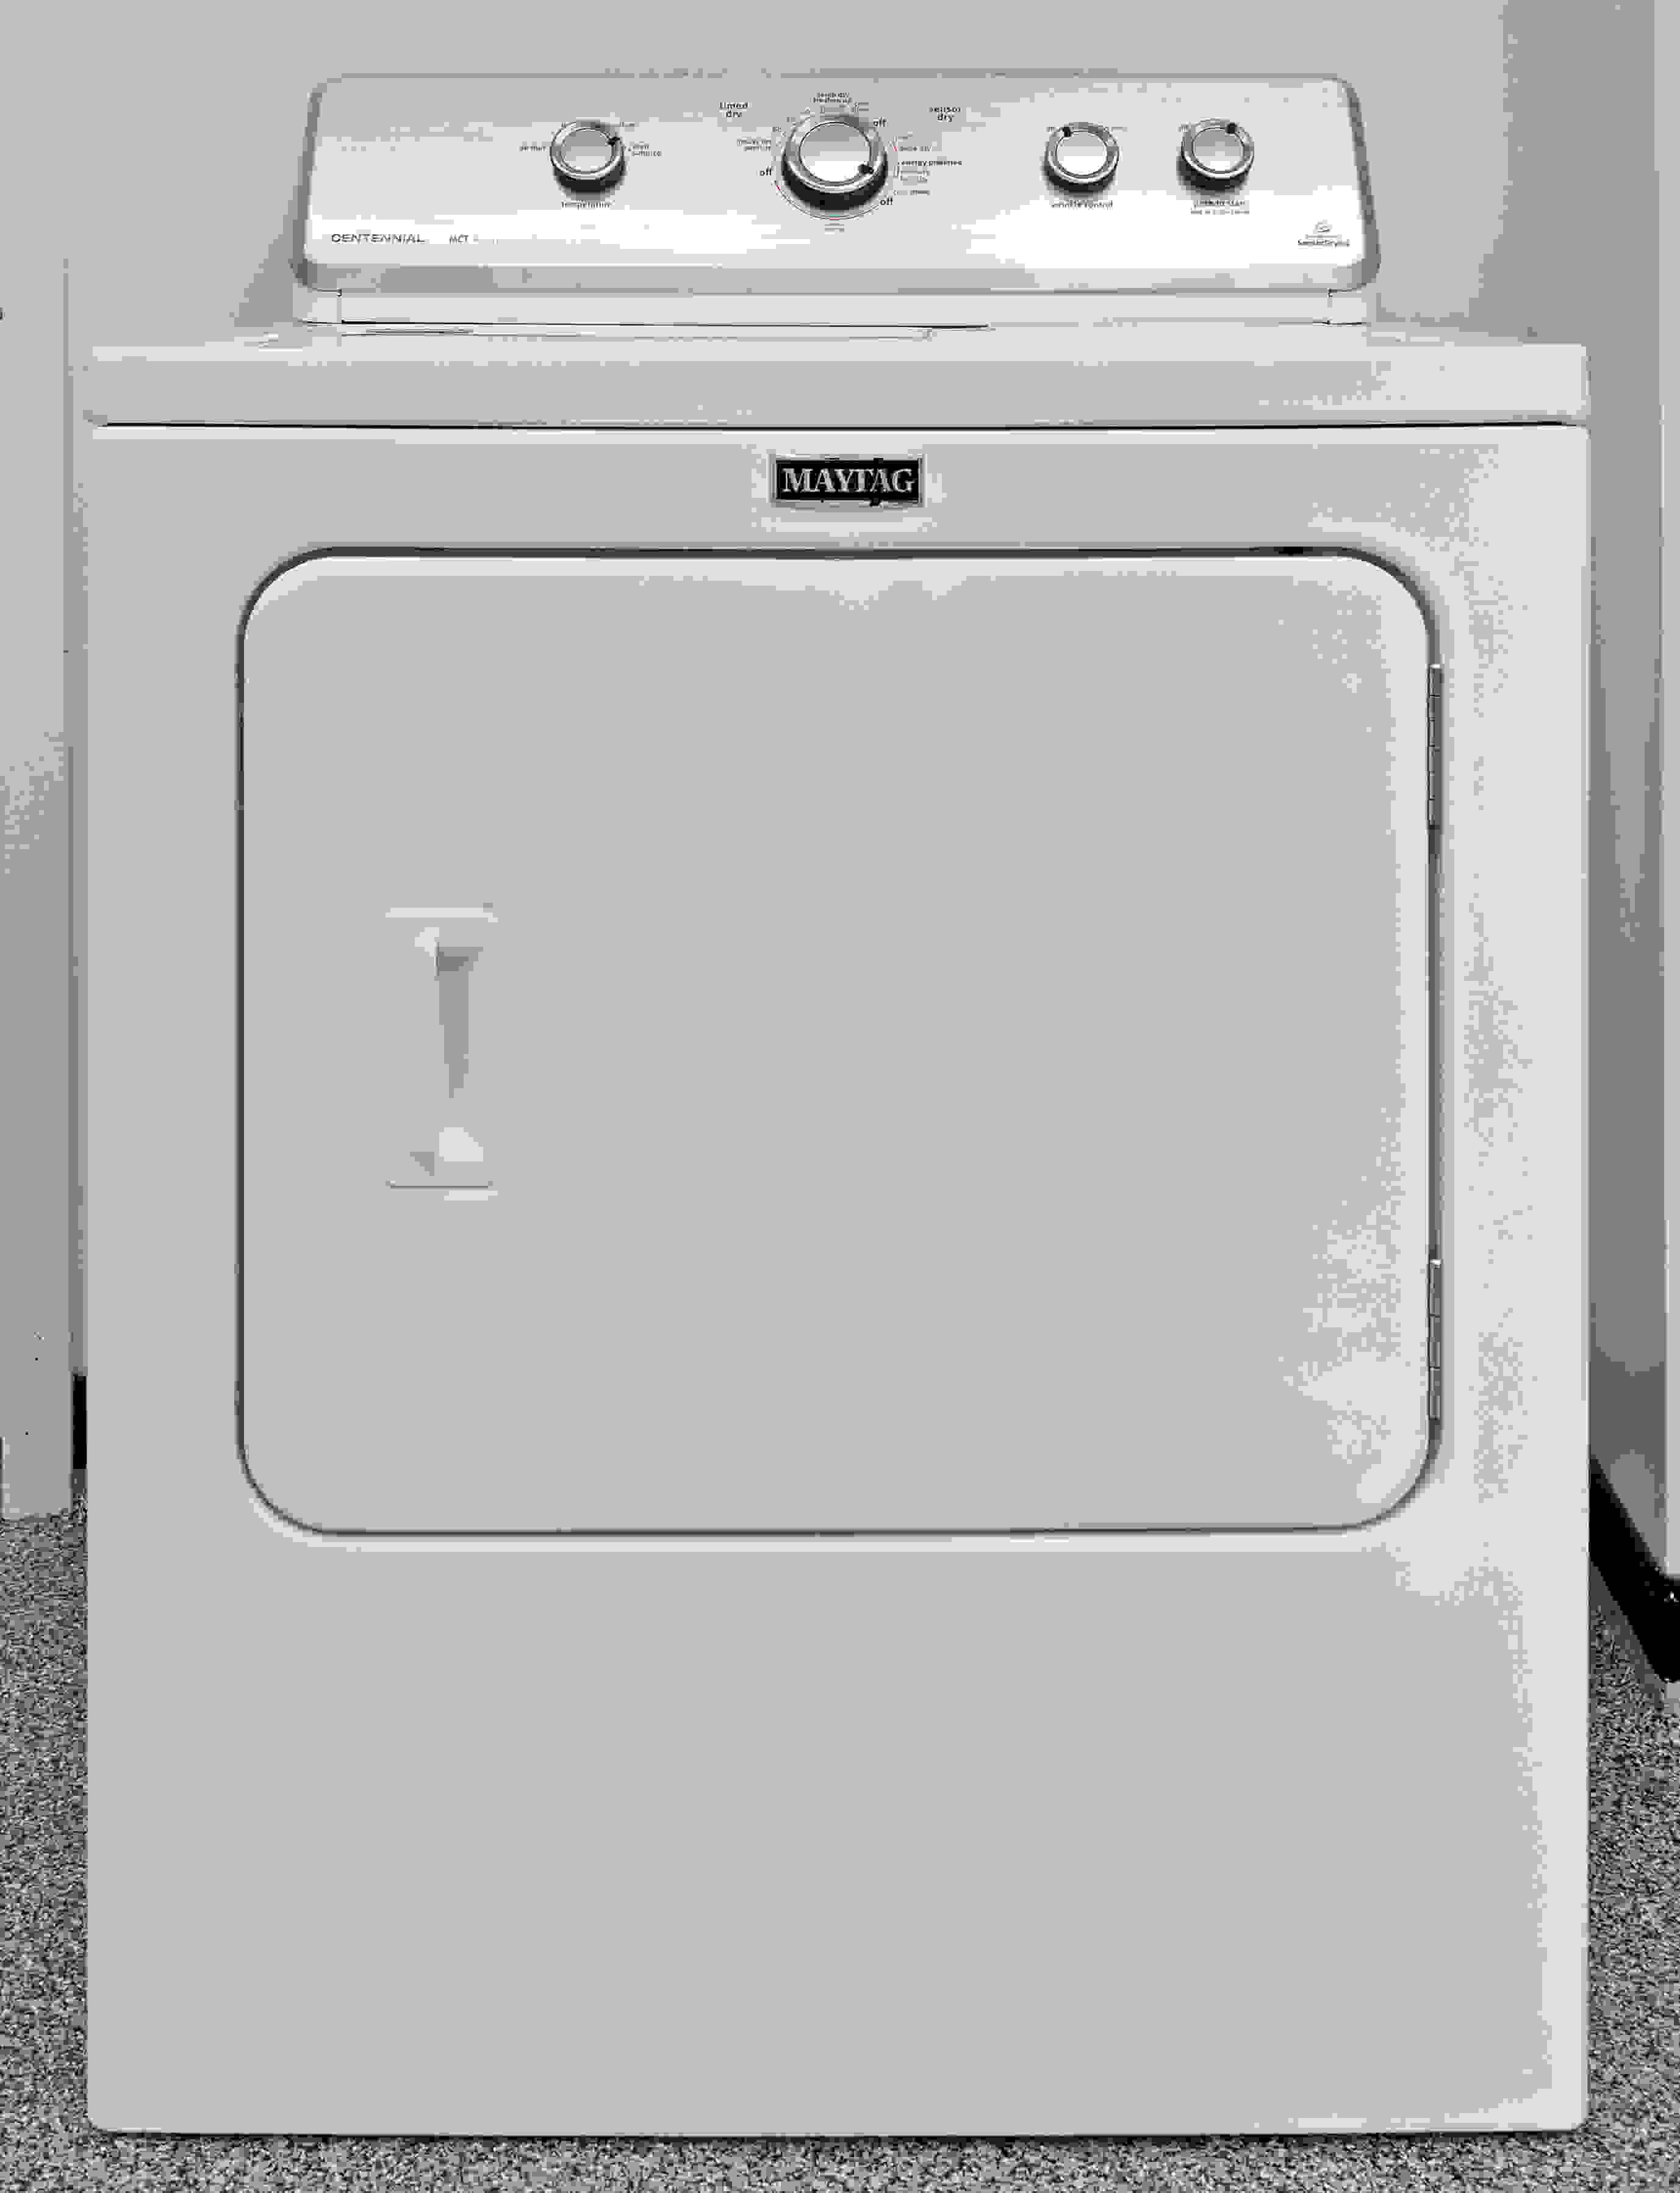 The Maytag Centennial MEDC415EW is a basic machine with a low-frills design.